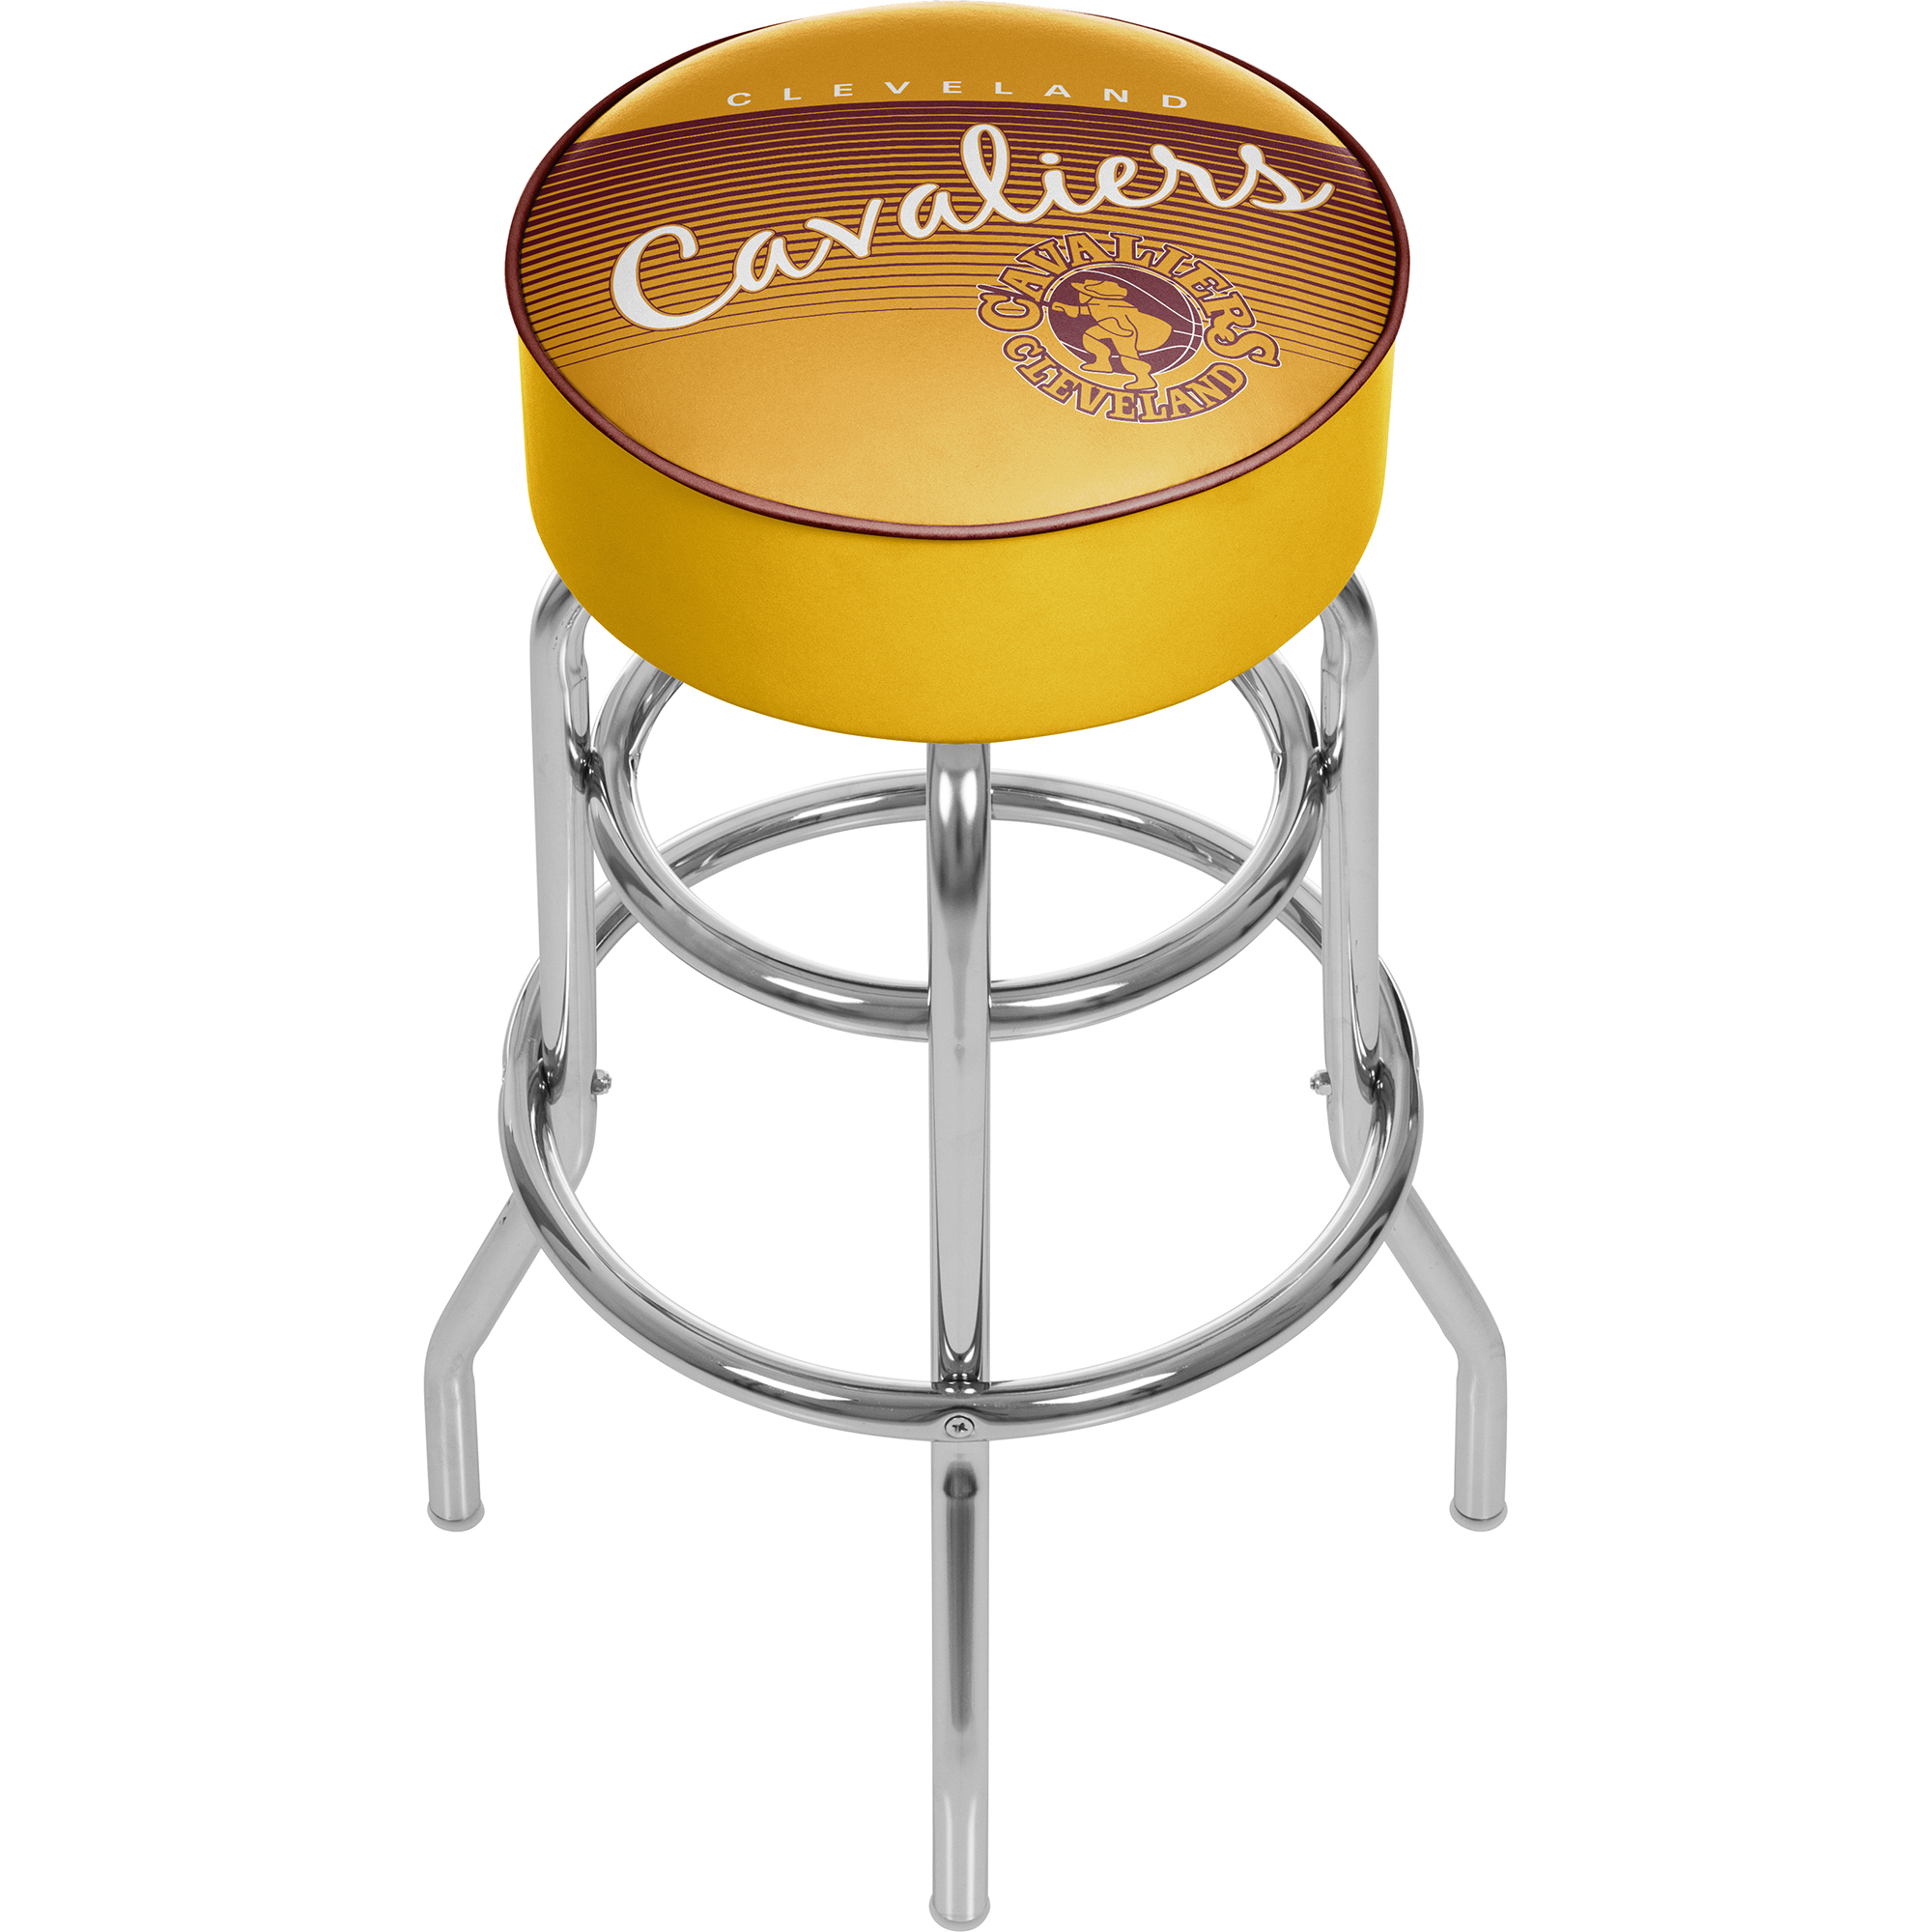 Cleveland Cavaliers NBA Hardwood Classics Padded Swivel Bar Stool 30 Inches High